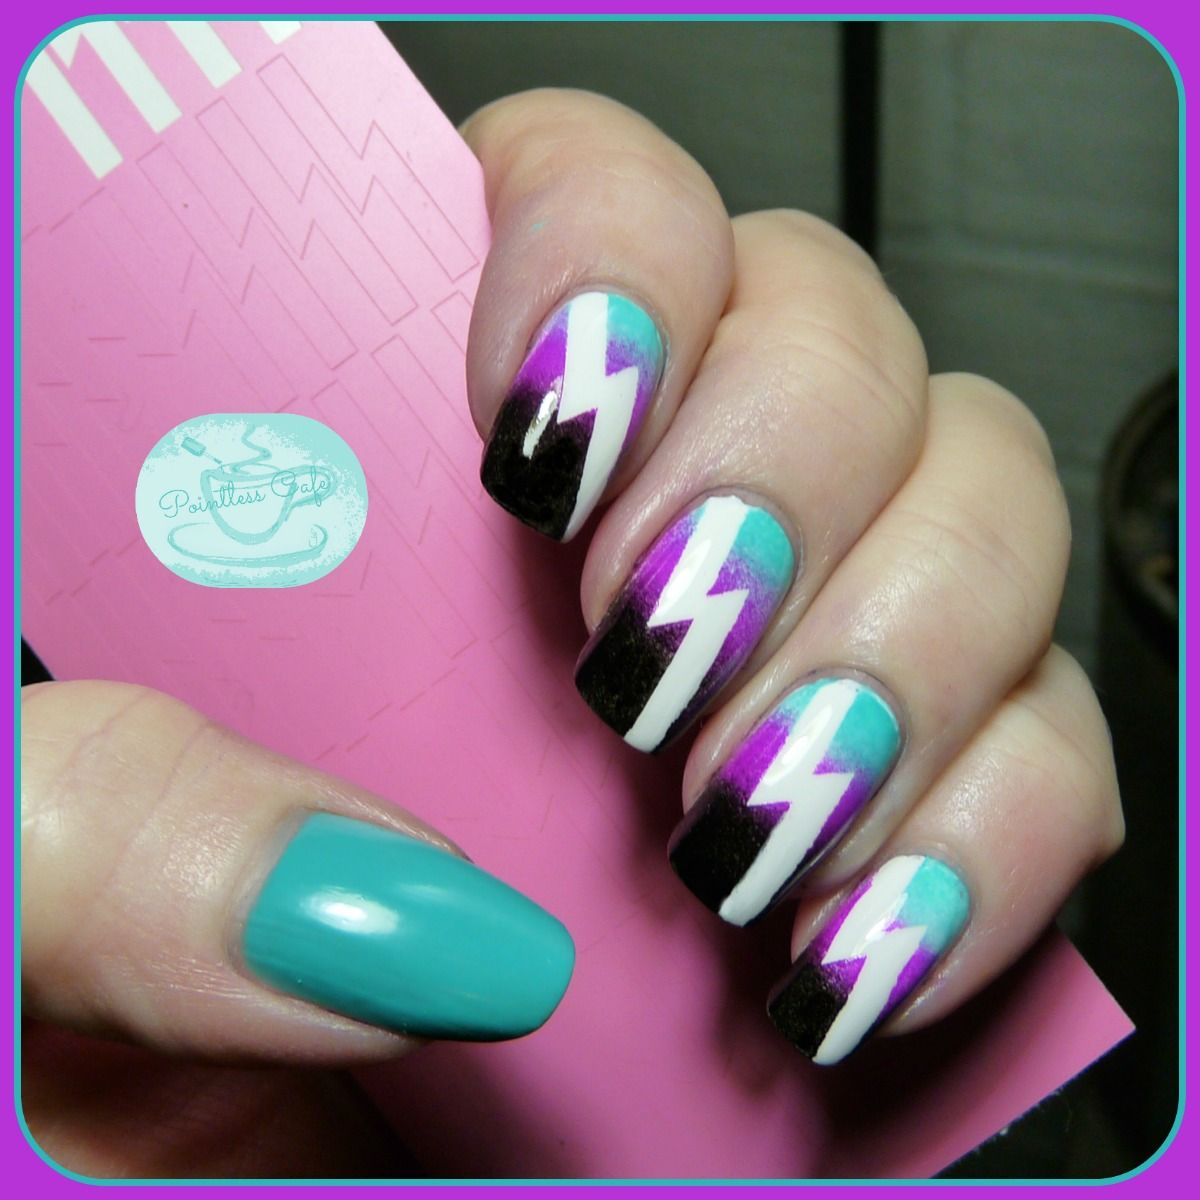 13 Days of January Nail Art Challenge: Complement and Contrast ...